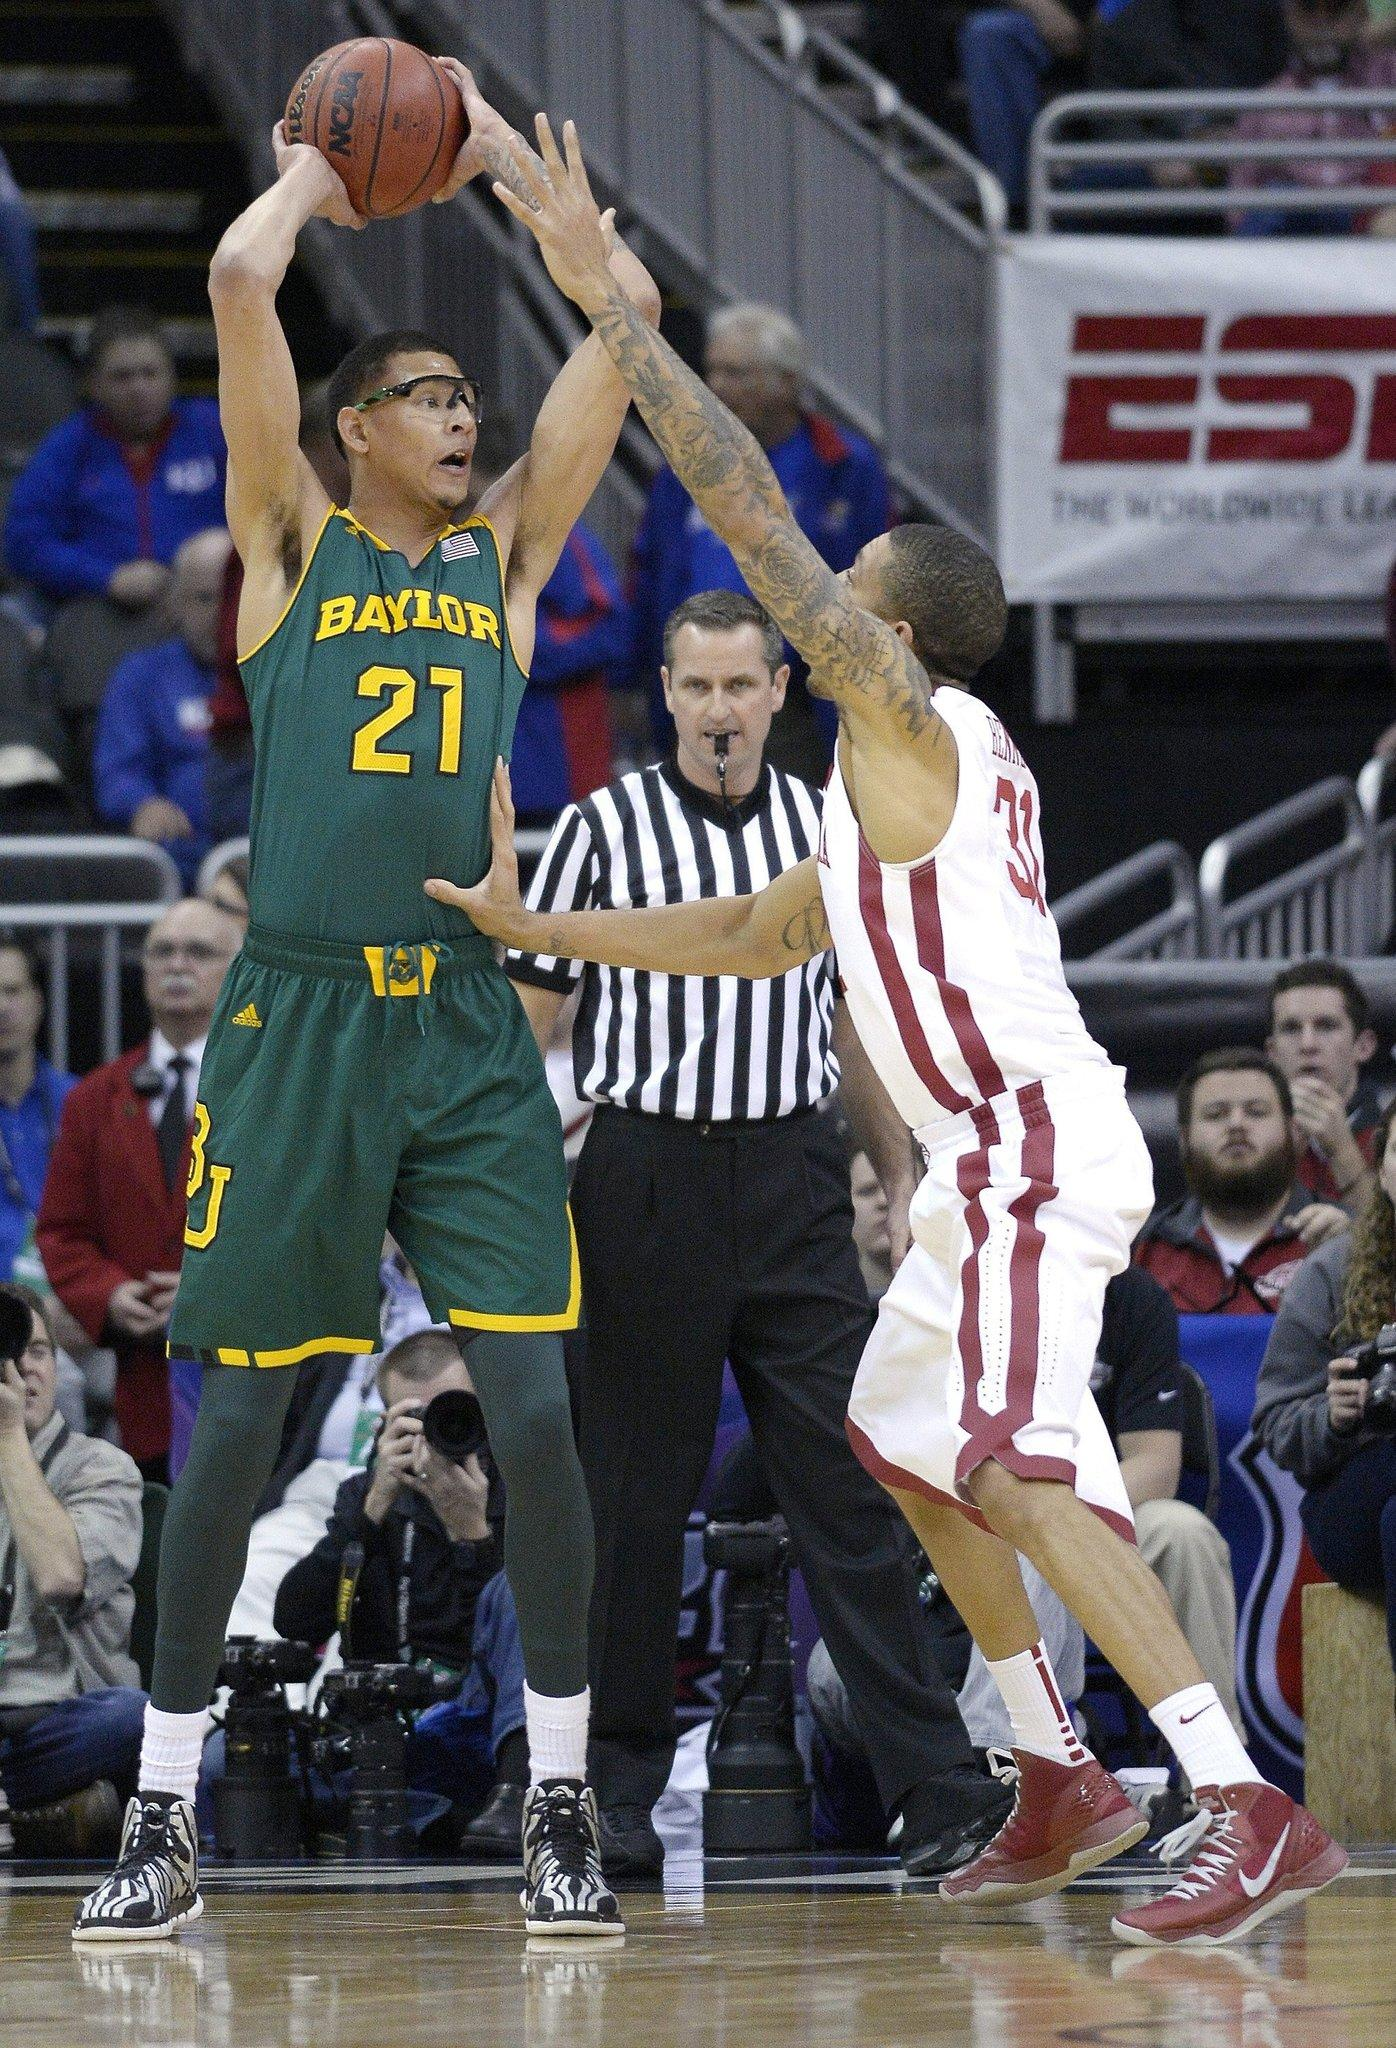 Baylor's Isaiah Austin looks to pass over Oklahoma's D.J. Bennett during the Big 12 Tournament at the Sprint Center.